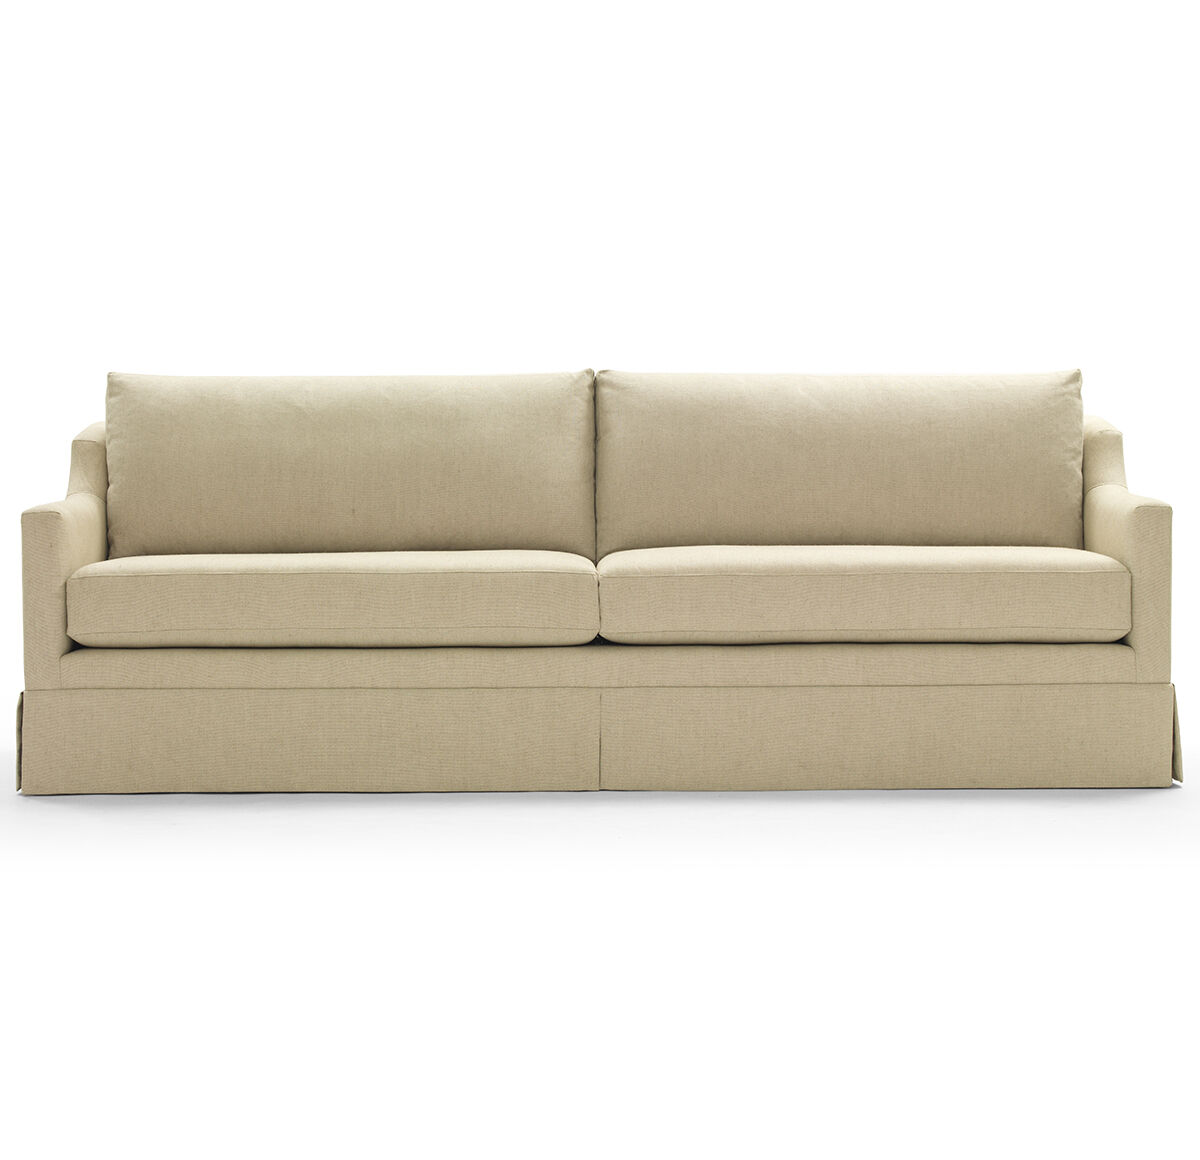 craftmaster sectional sofa reviews bamboo arm table skirted monterey 94 ethan allen - thesofa